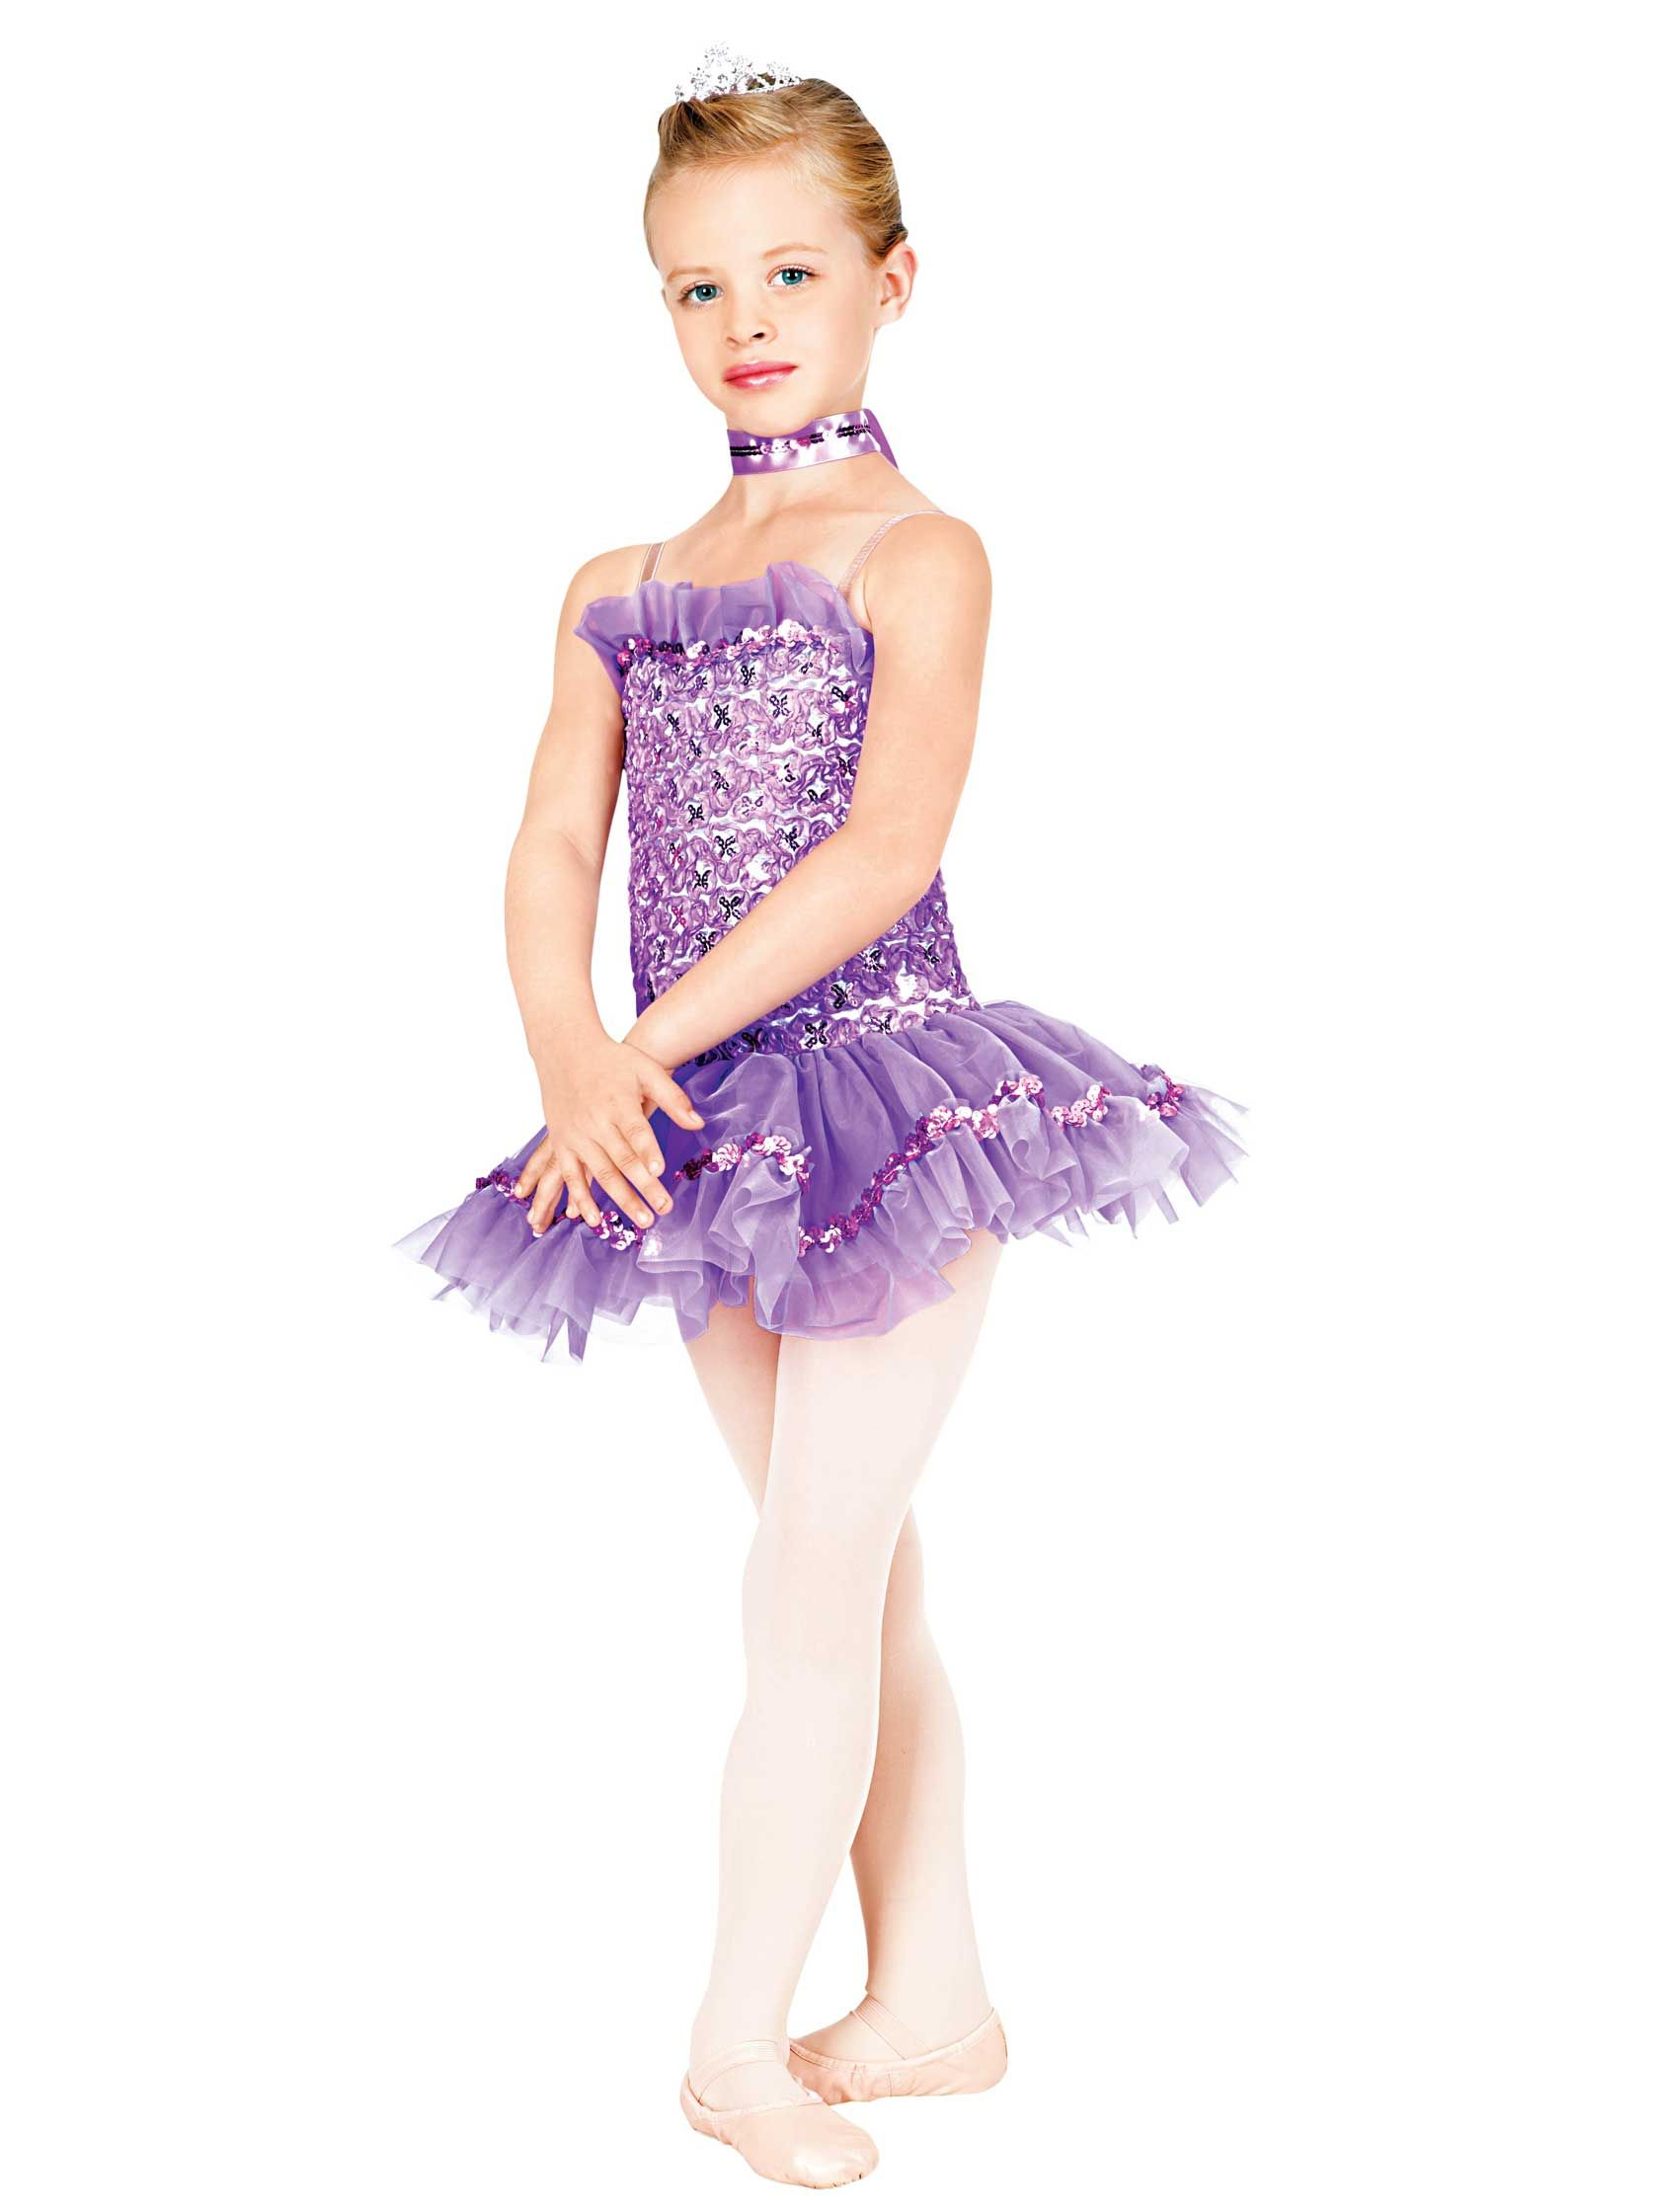 Tiny Dancer (TH1020c) - by Theatricals  A new costume line